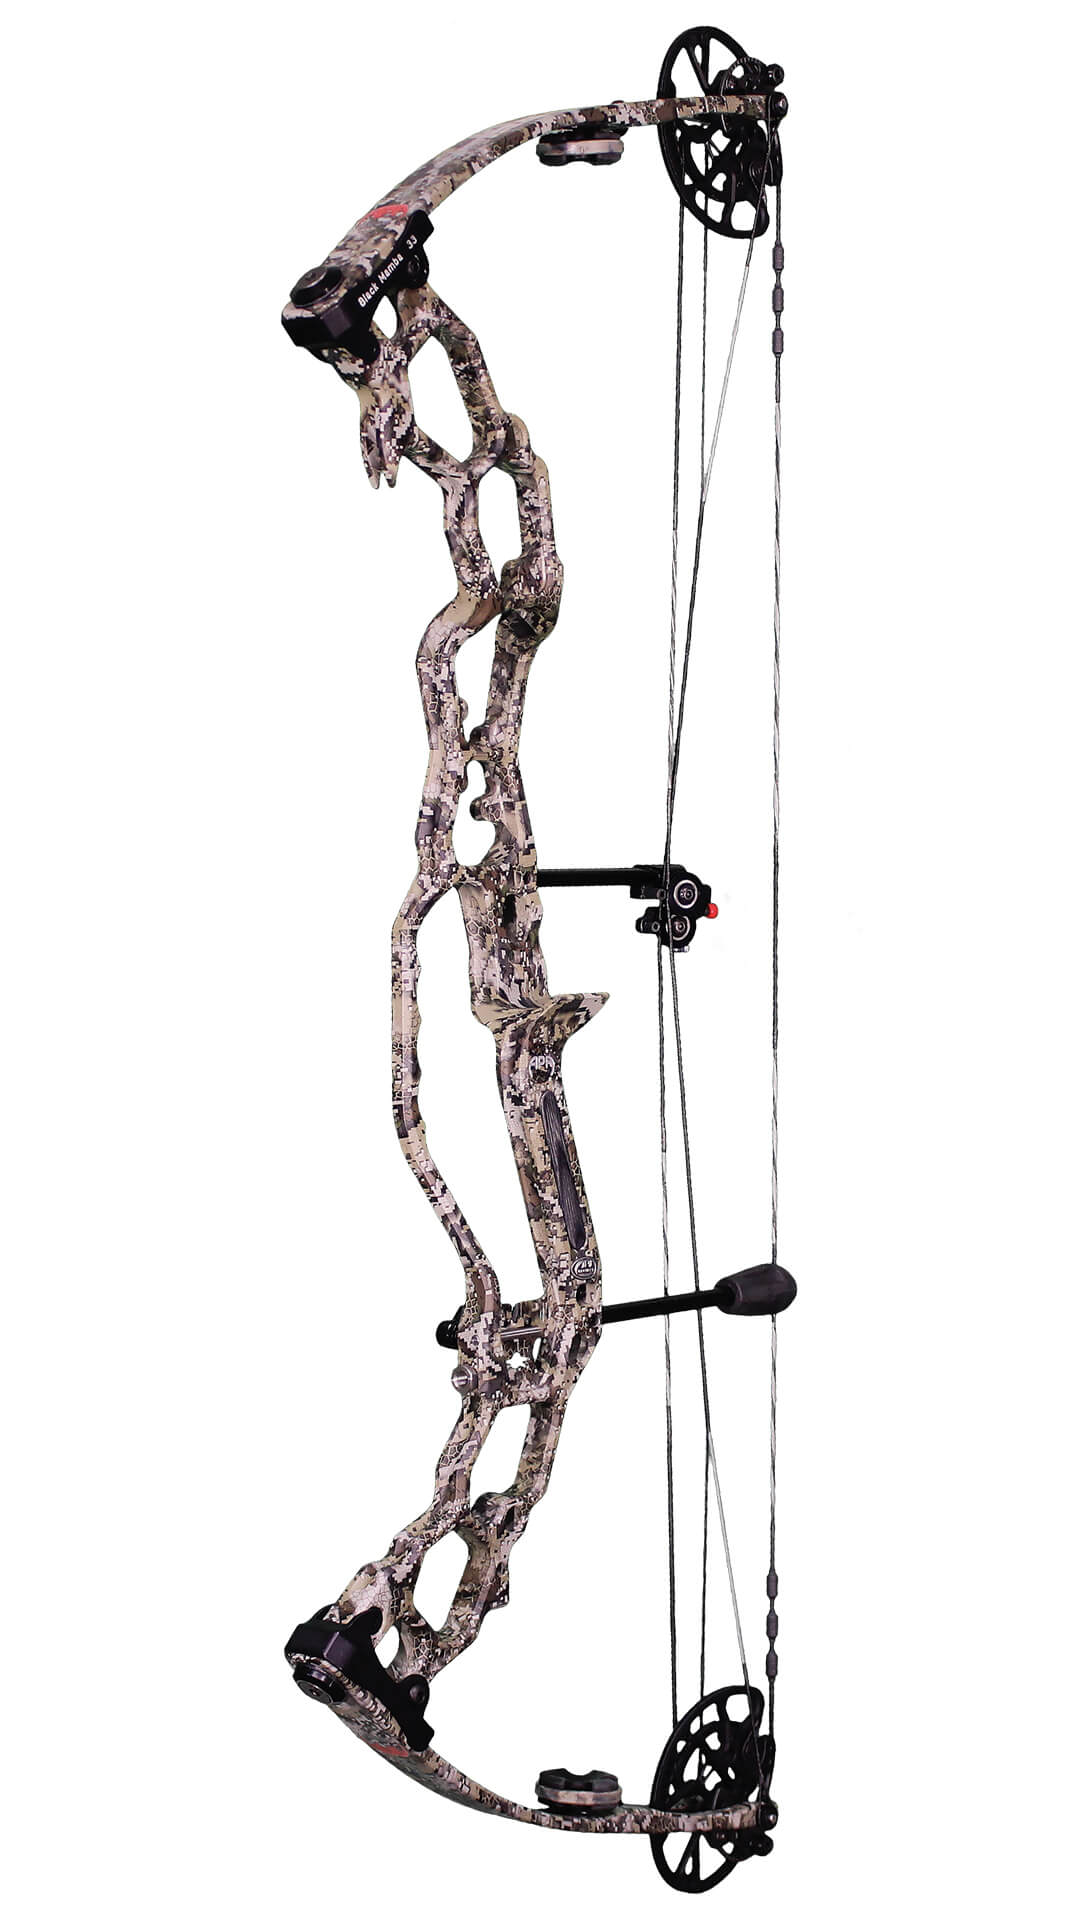 APA Black Mamba 33 Compound Bow